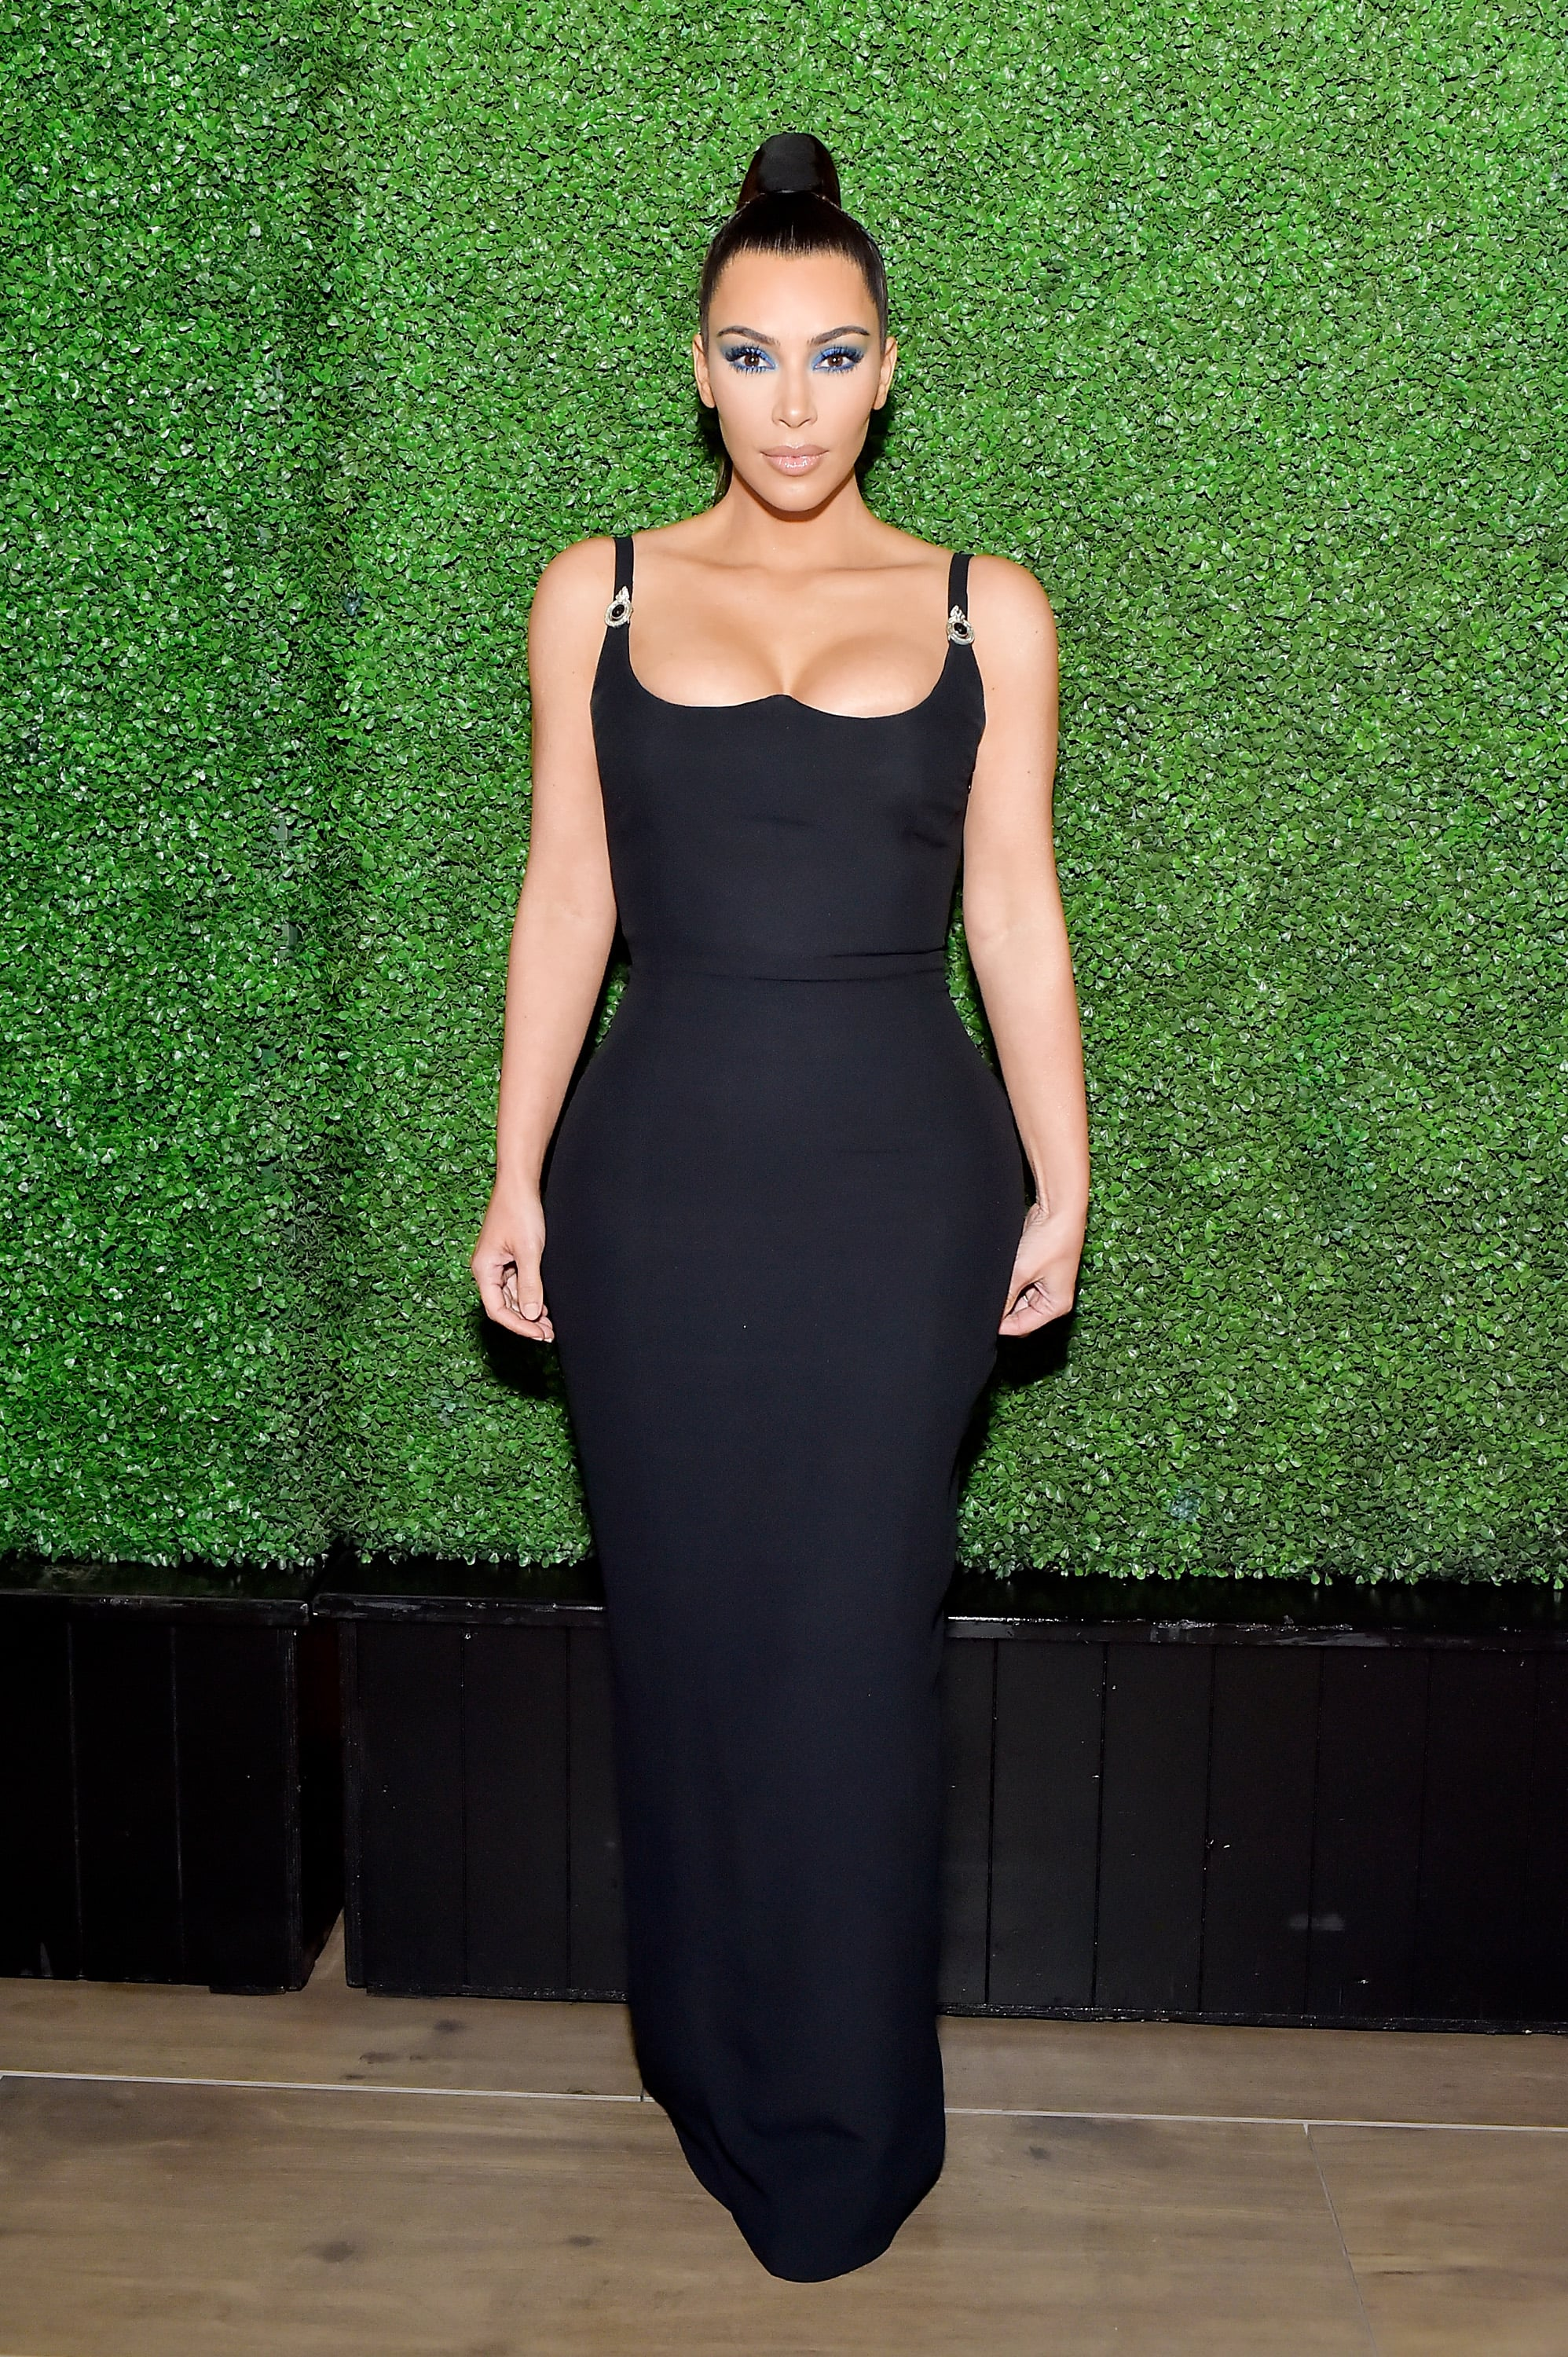 BEVERLY HILLS, CA - MARCH 31:  Kim Kardashian West attends KKWxMario Dinner at Jean-Georges Beverly Hills on March 31, 2018 in Beverly Hills, California.  (Photo by Stefanie Keenan/WireImage)